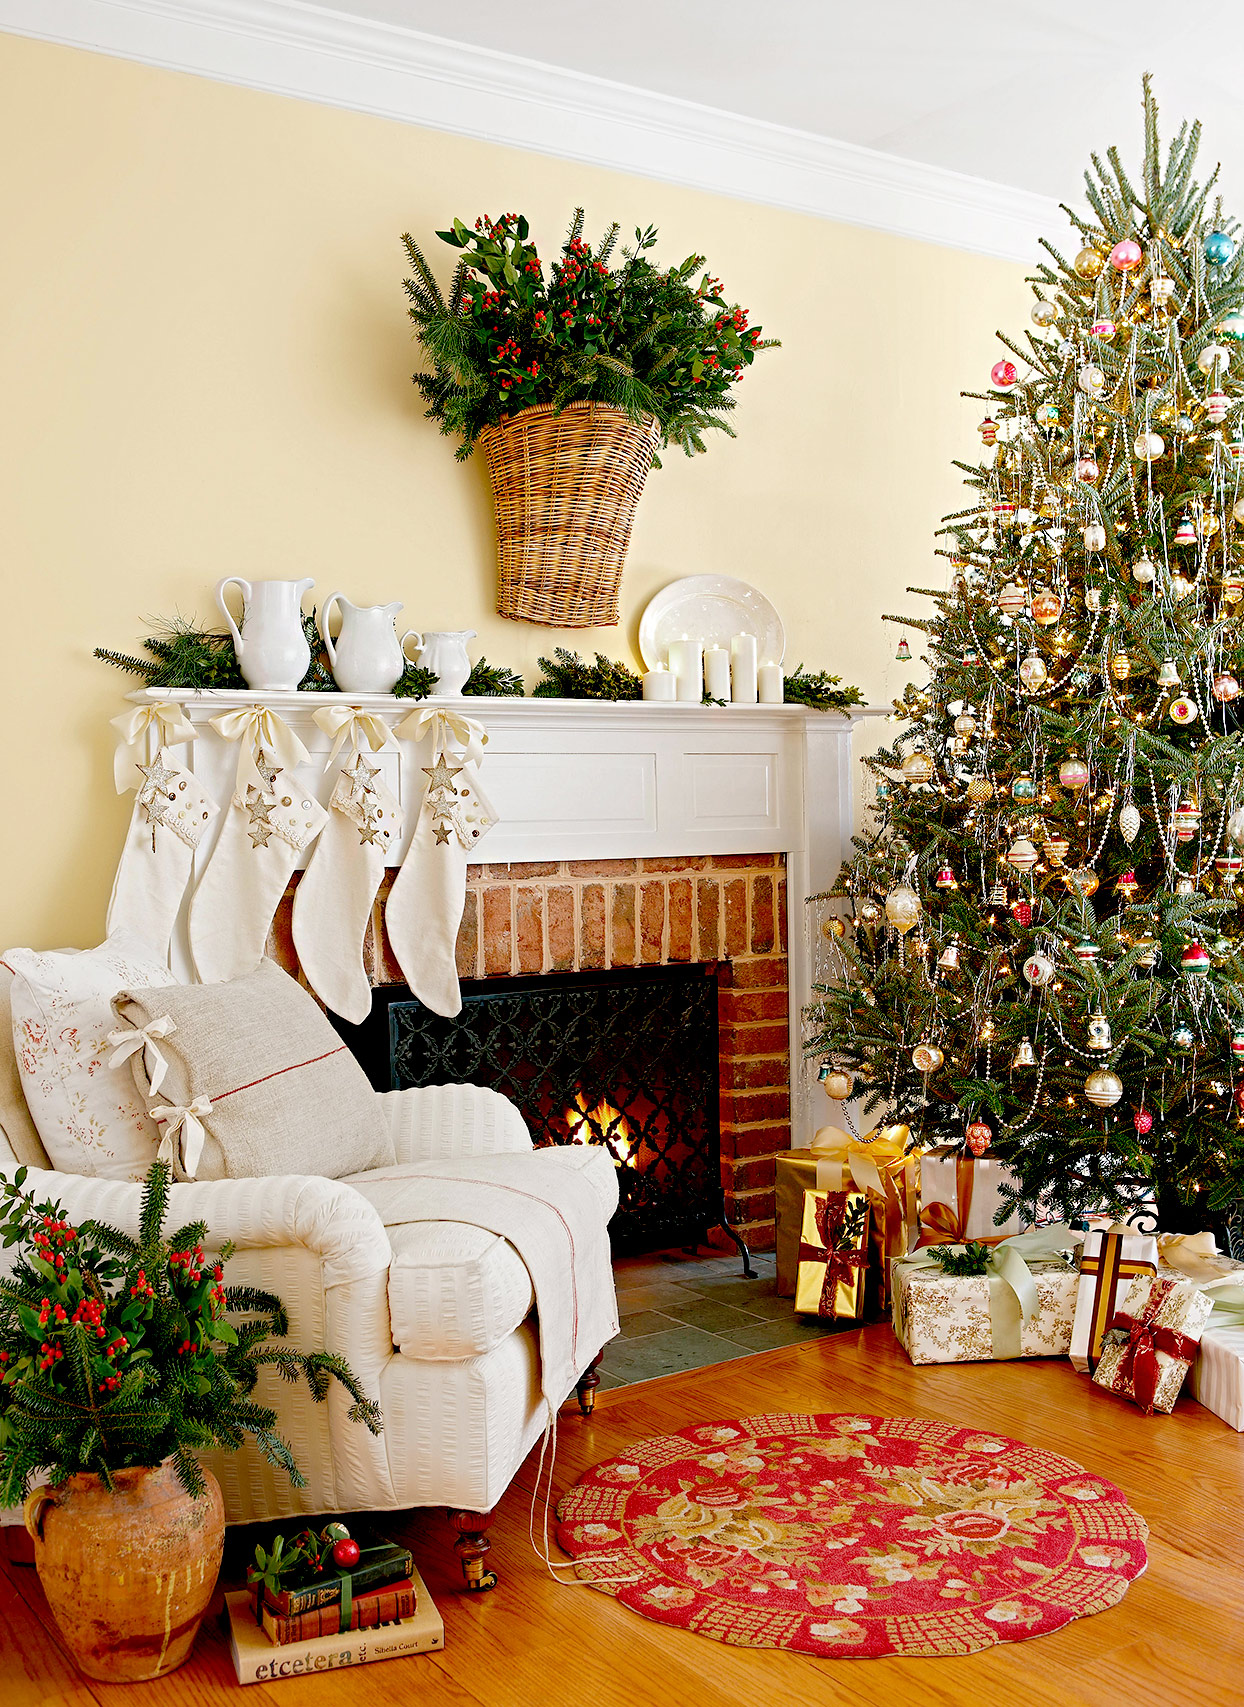 Fireplace with chair and Christmas tree